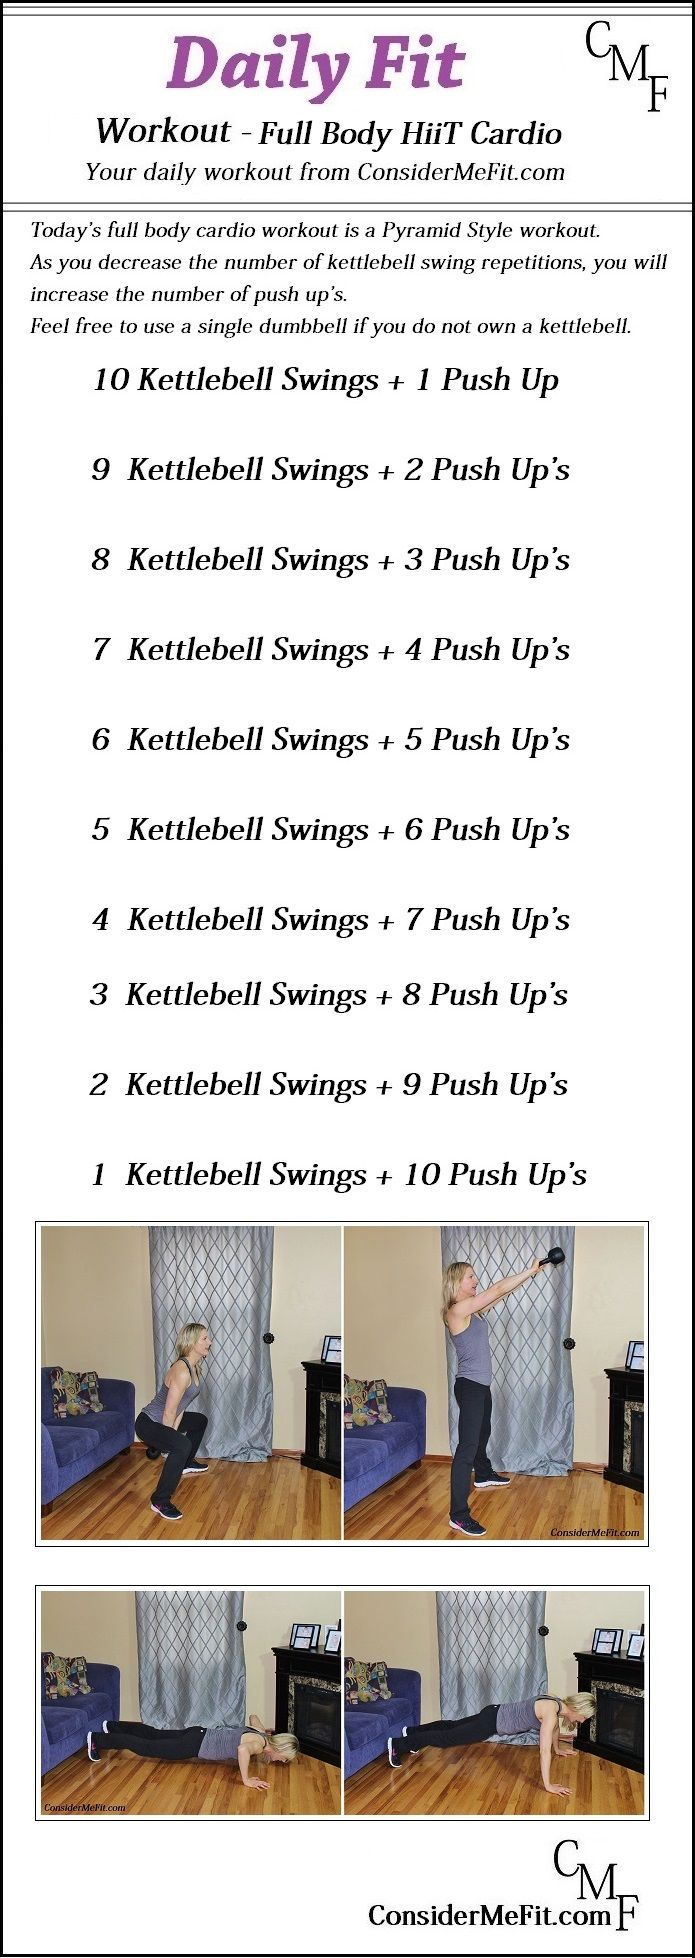 I chose this one to pin because it will improve your cardio endurance by every time you repeat it will get easier